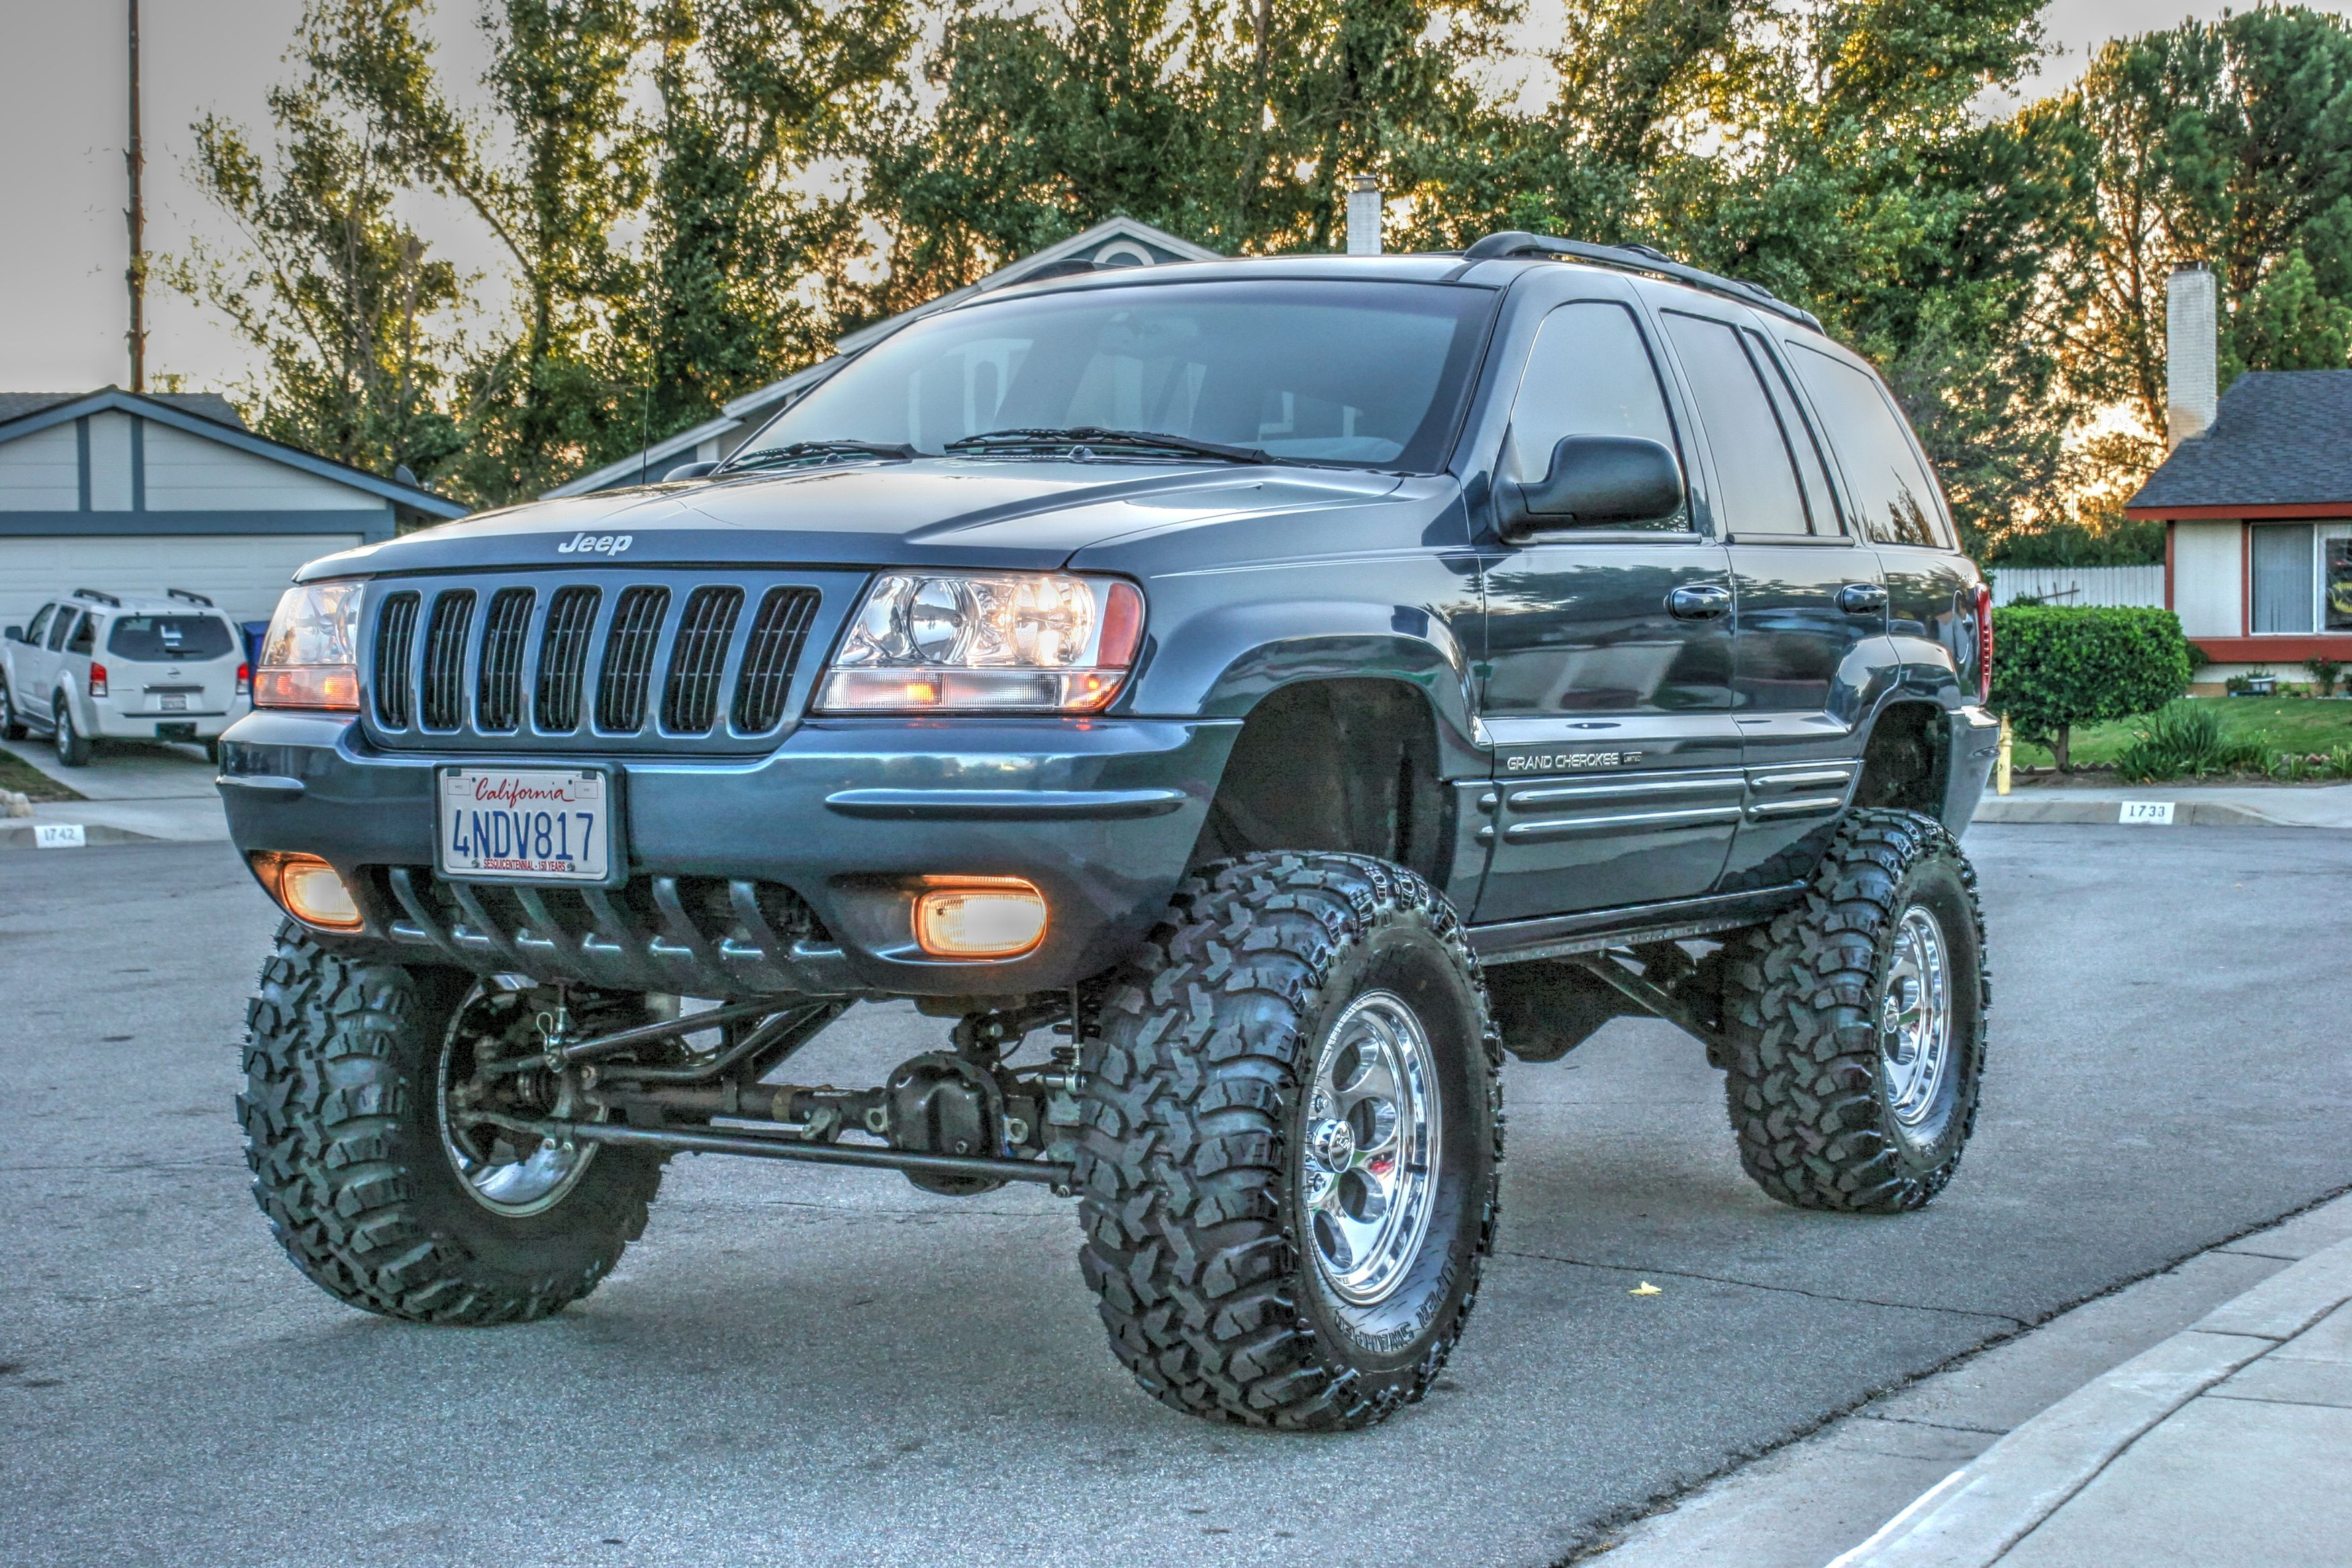 2000 Jeep Grand Cherokee Wj Rockkrawler 6 5 Lift 2 Front Spacers